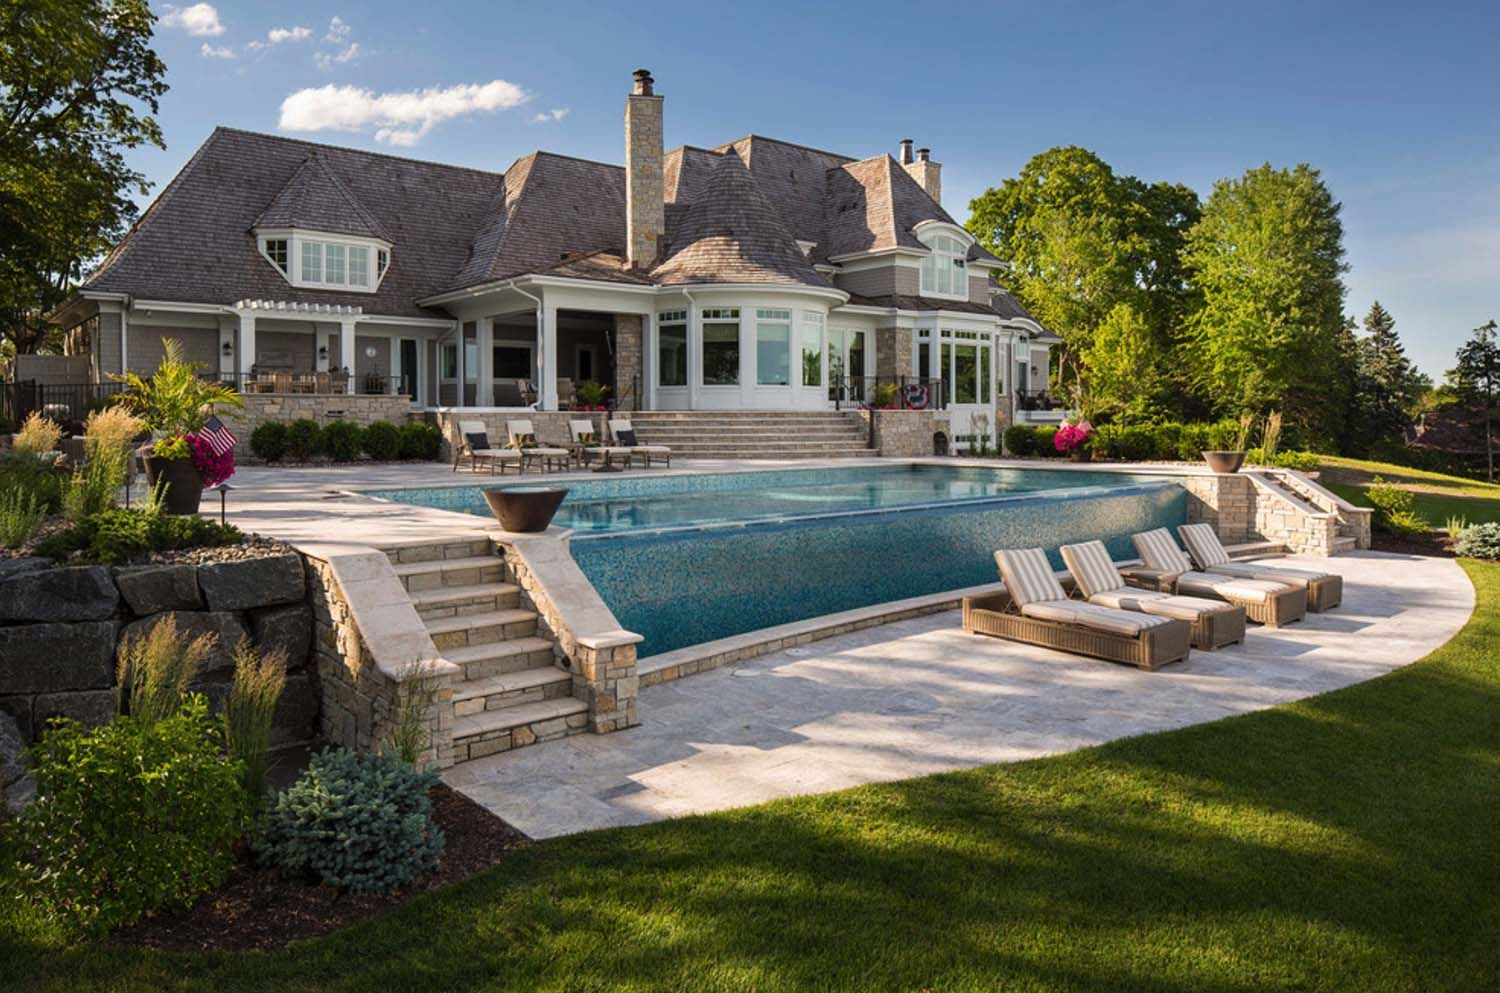 5 Pool Designs That Will Make Your Jaw Drop | Seaway Pools